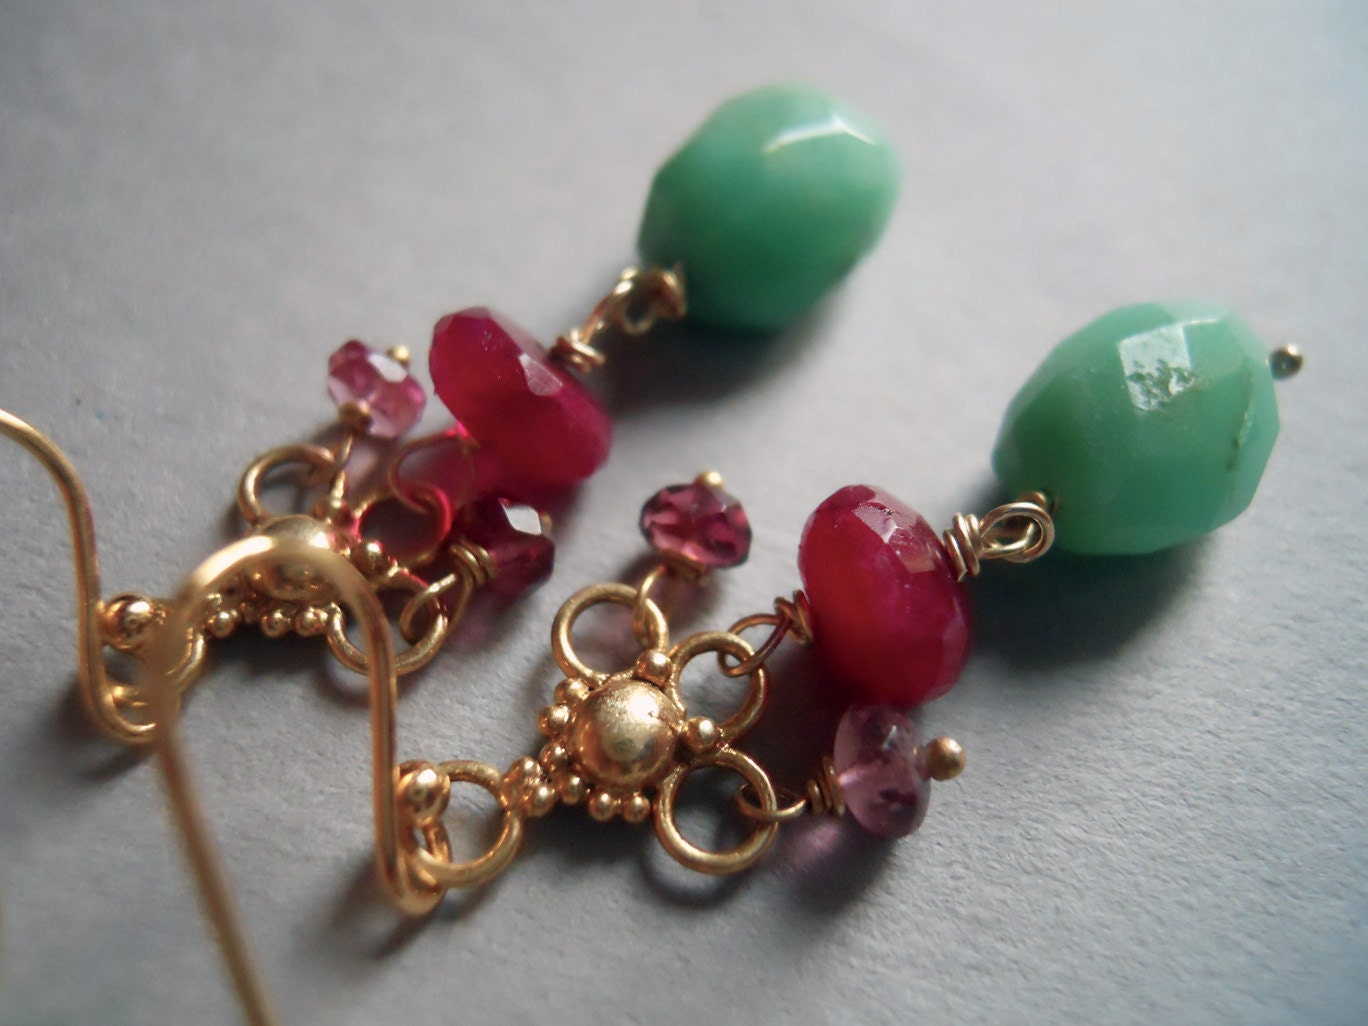 A Beautiful Mess chandelier earrings with chrysoprase, ruby moonstone and tourmaline - $62.00 USD